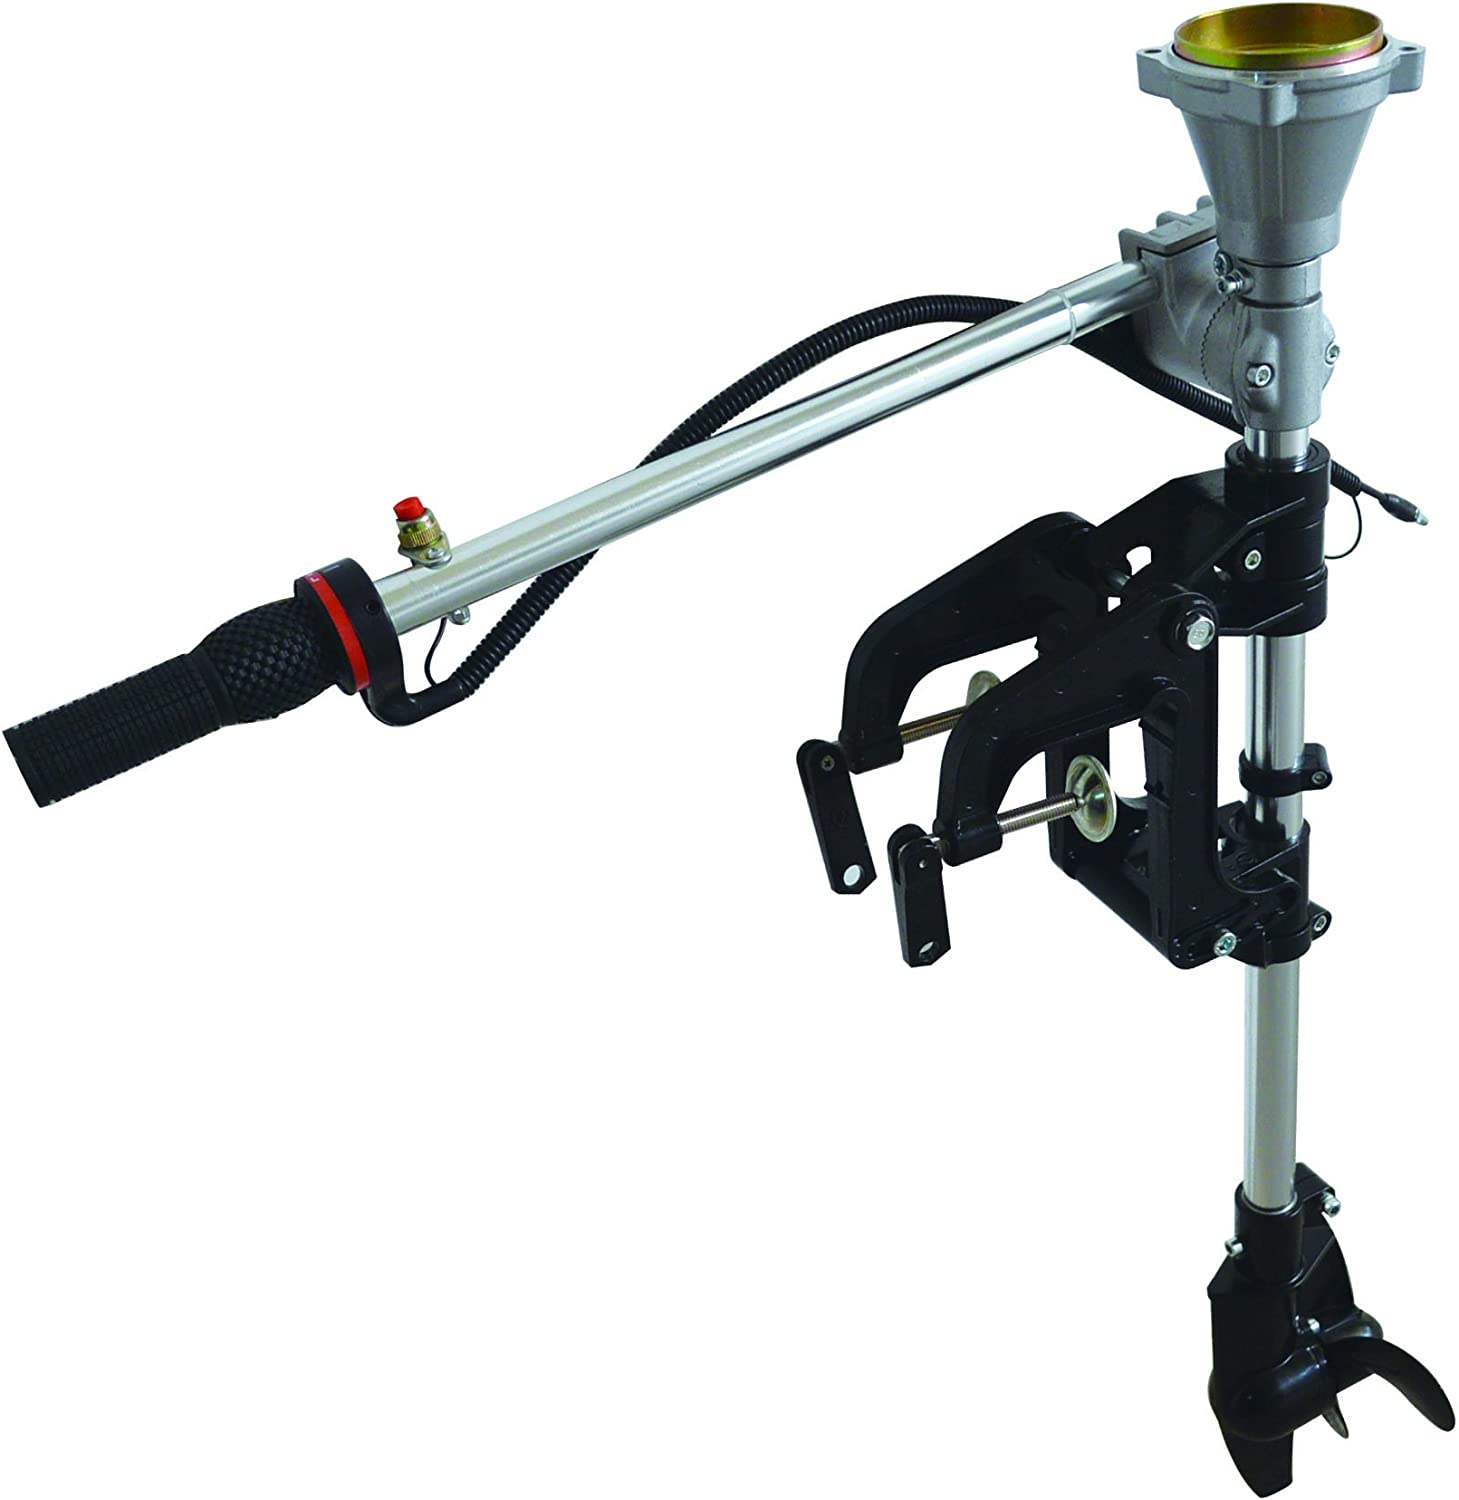 SEA DOG WATER SPORTS Large-scale sale Outboard Motor 1.4P Direct stock discount 1.5 4-Stroke for Parts